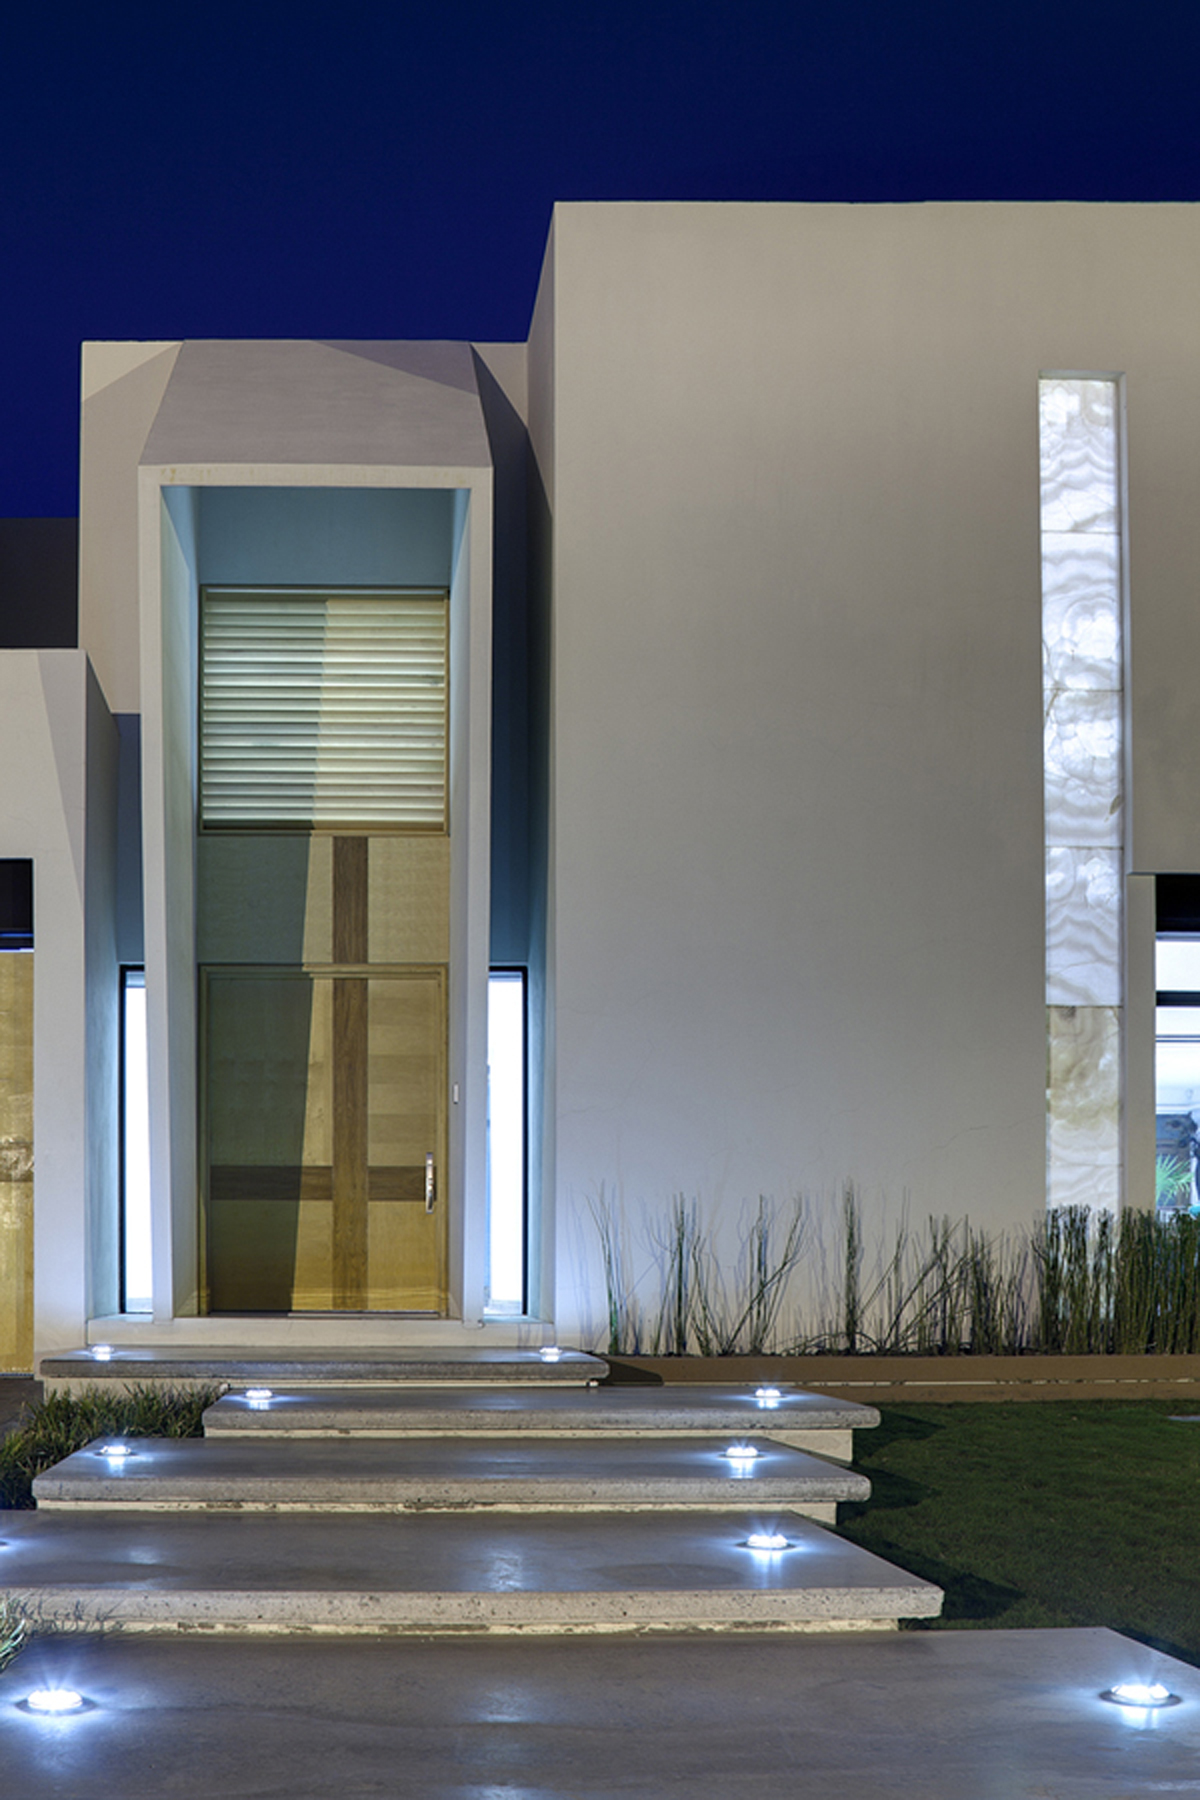 marvelous sculpture house design in juarez mexico by